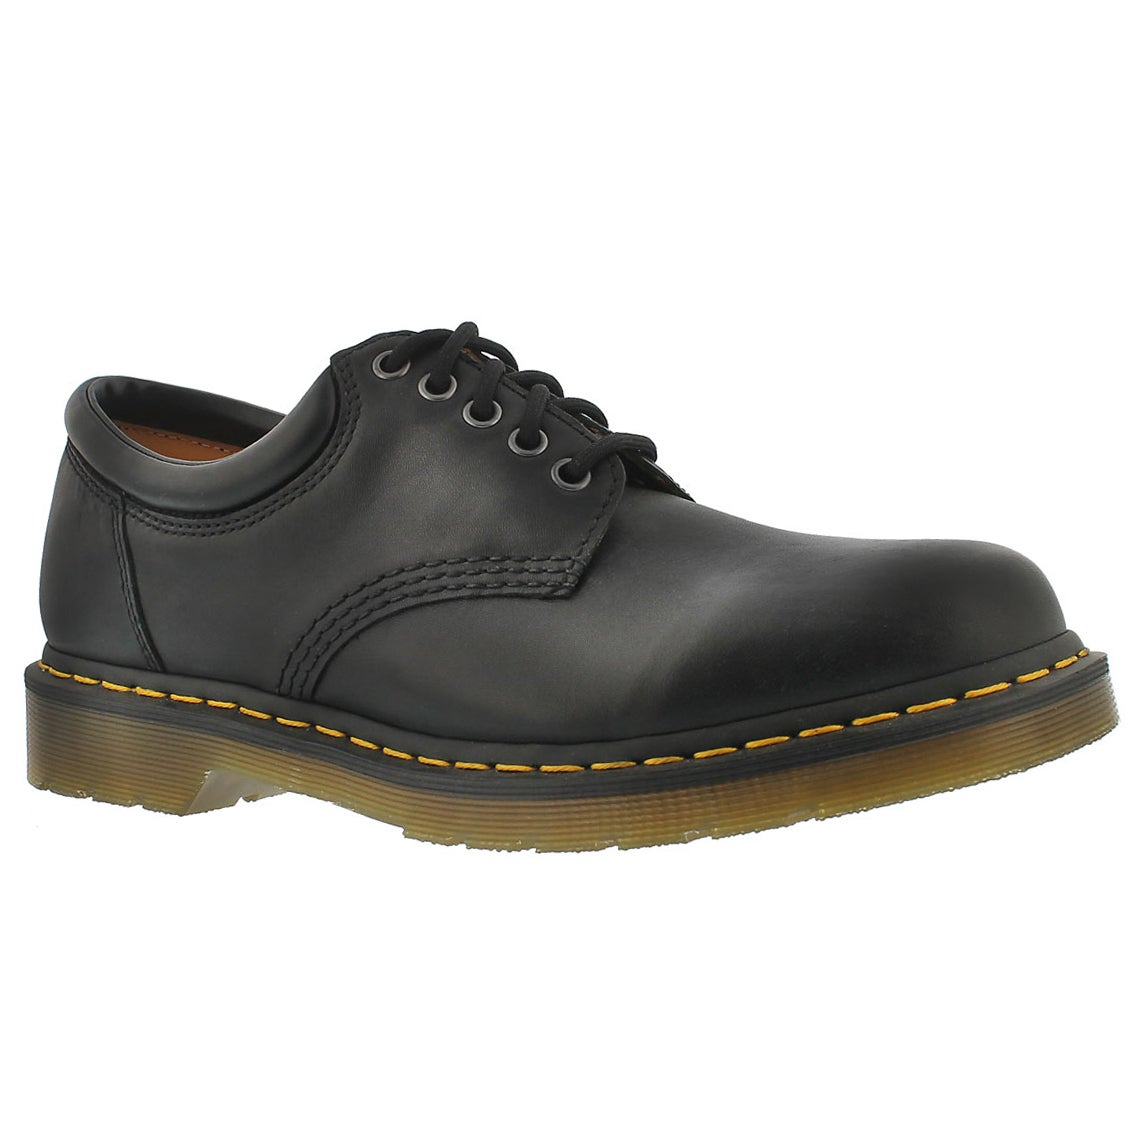 Men's 8053 5-Eye black leather oxfords